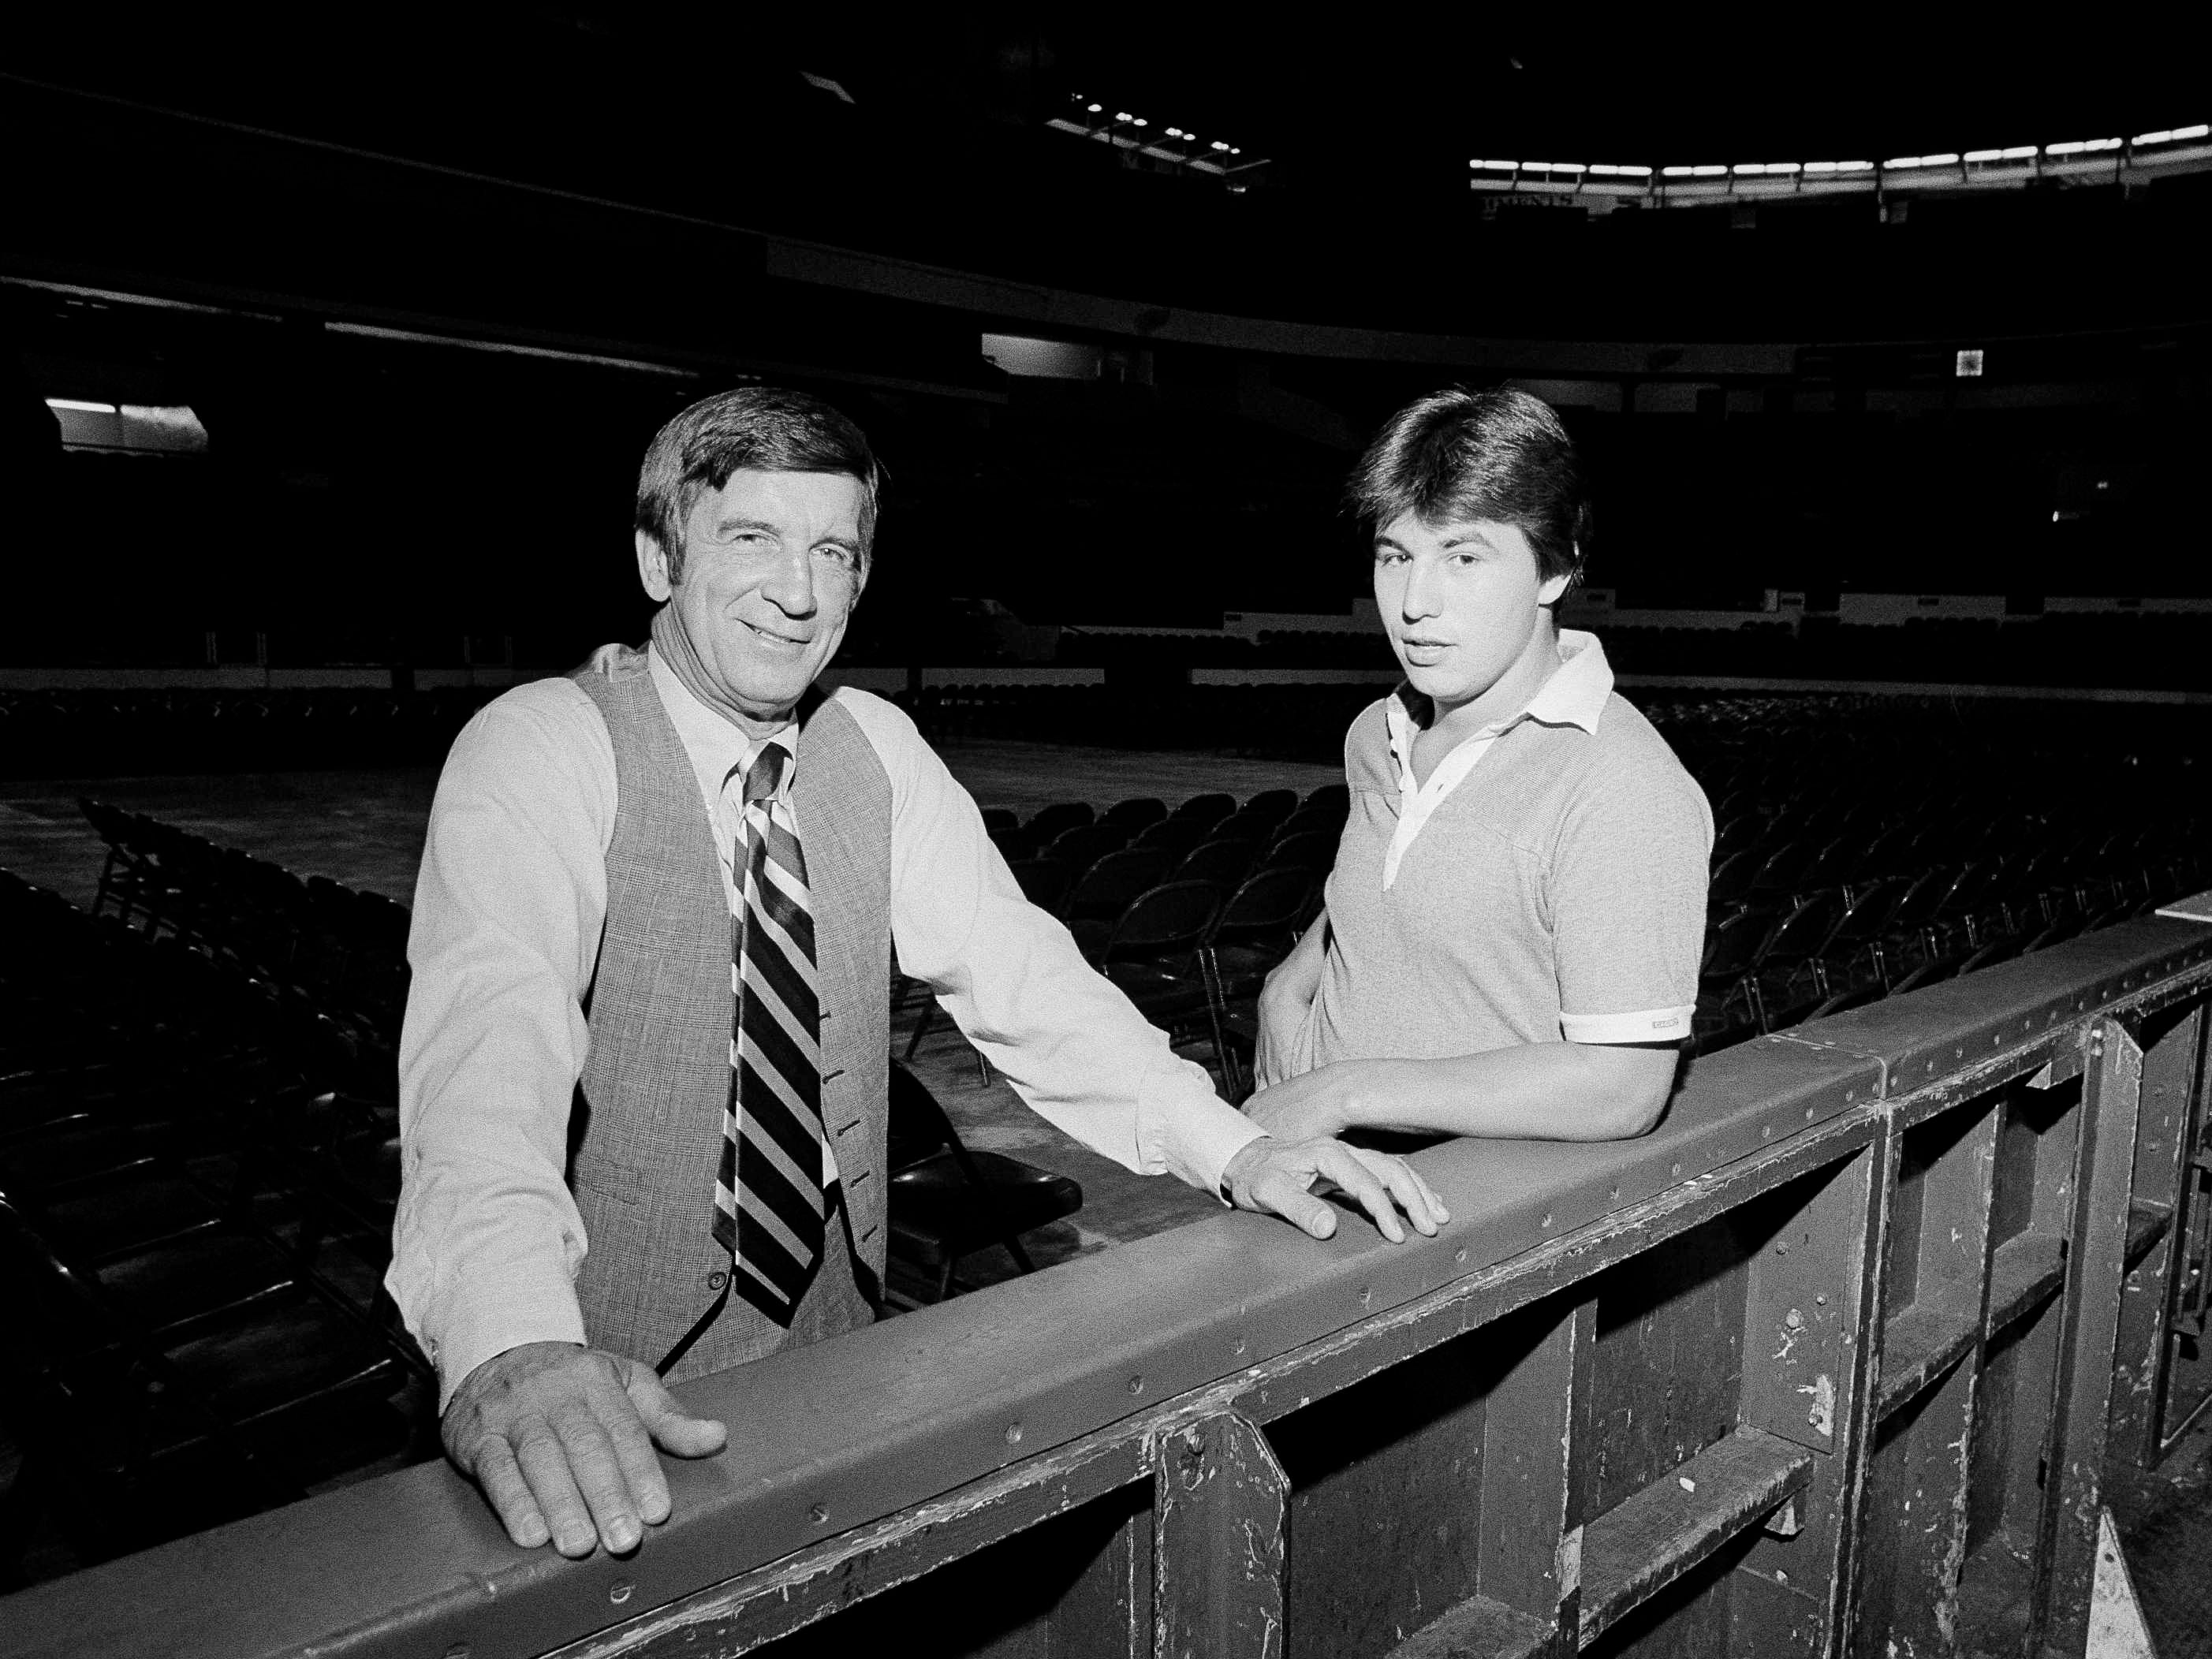 Red Wings general manager Ted Lindsay, left, and Wings center Dale McCourt on the edge of the rink in Olympia Stadium in Detroit, Sept. 20, 1978, before McCourt's departure to Wings training camp in Kalamazoo.